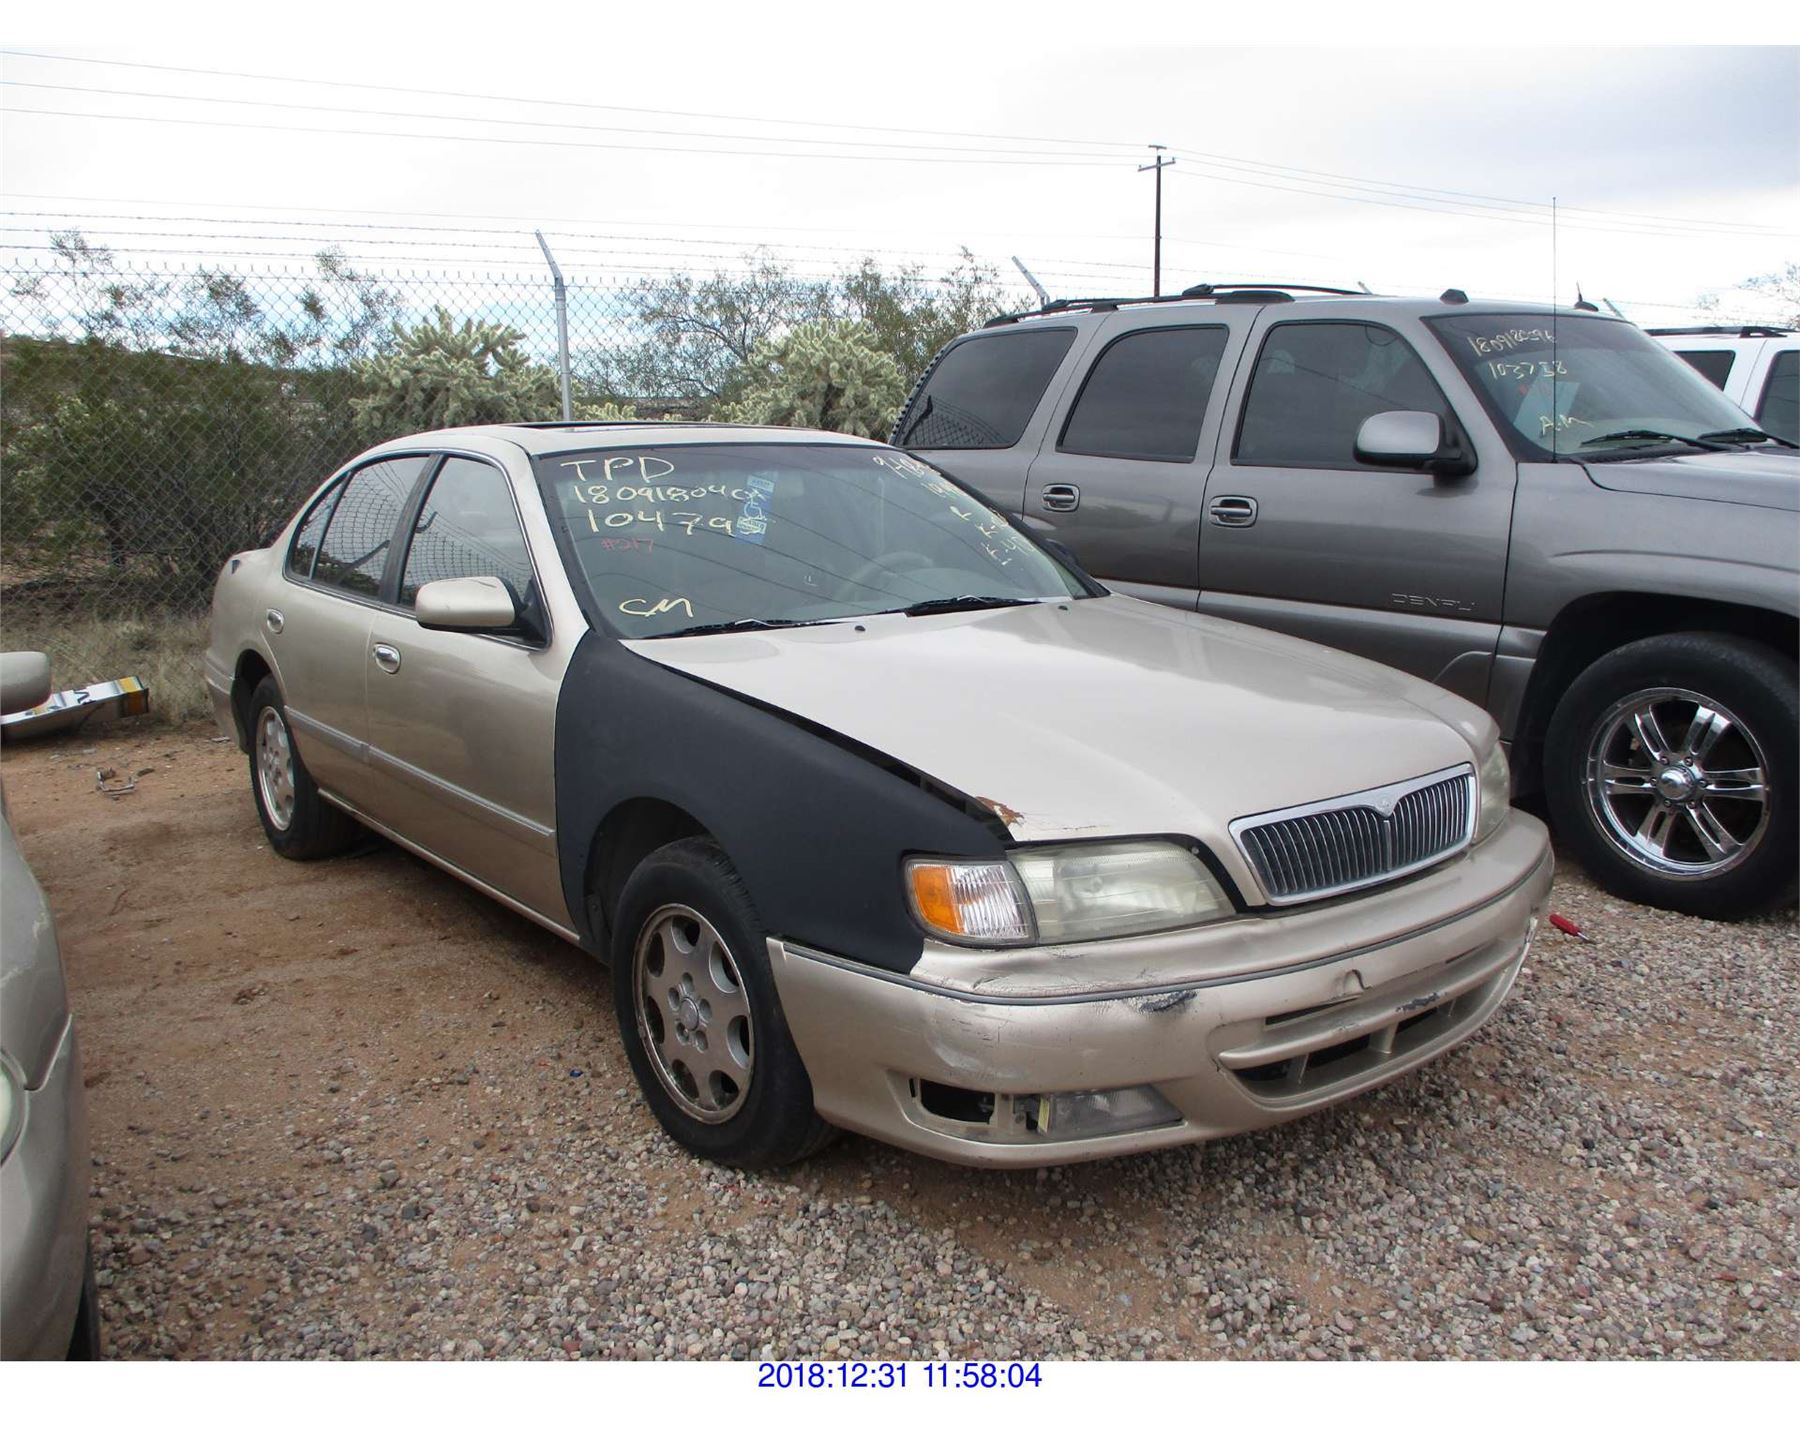 medium resolution of image 1 1998 infiniti i30 restored salvage